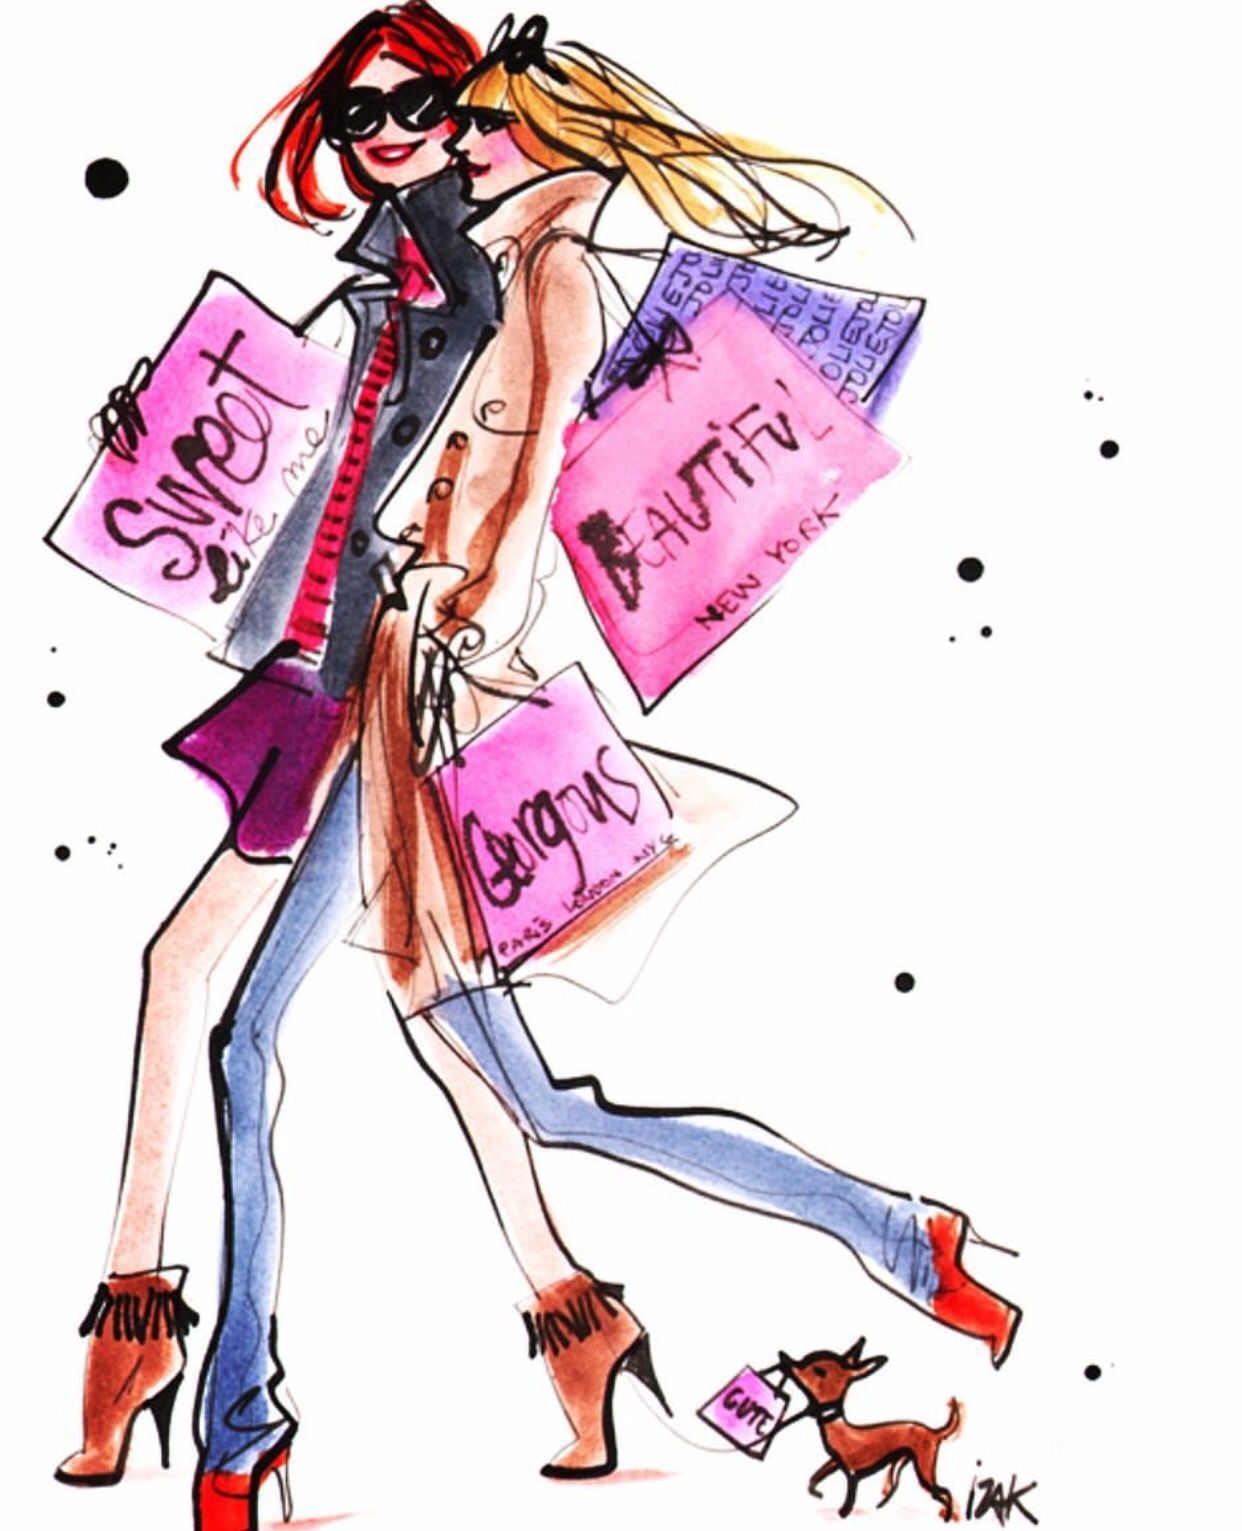 @HenriBendel #bendelgirls by Izak Zenou ❥|Mz. Manerz: Being well dressed is a beautiful form of confidence, happiness & politeness